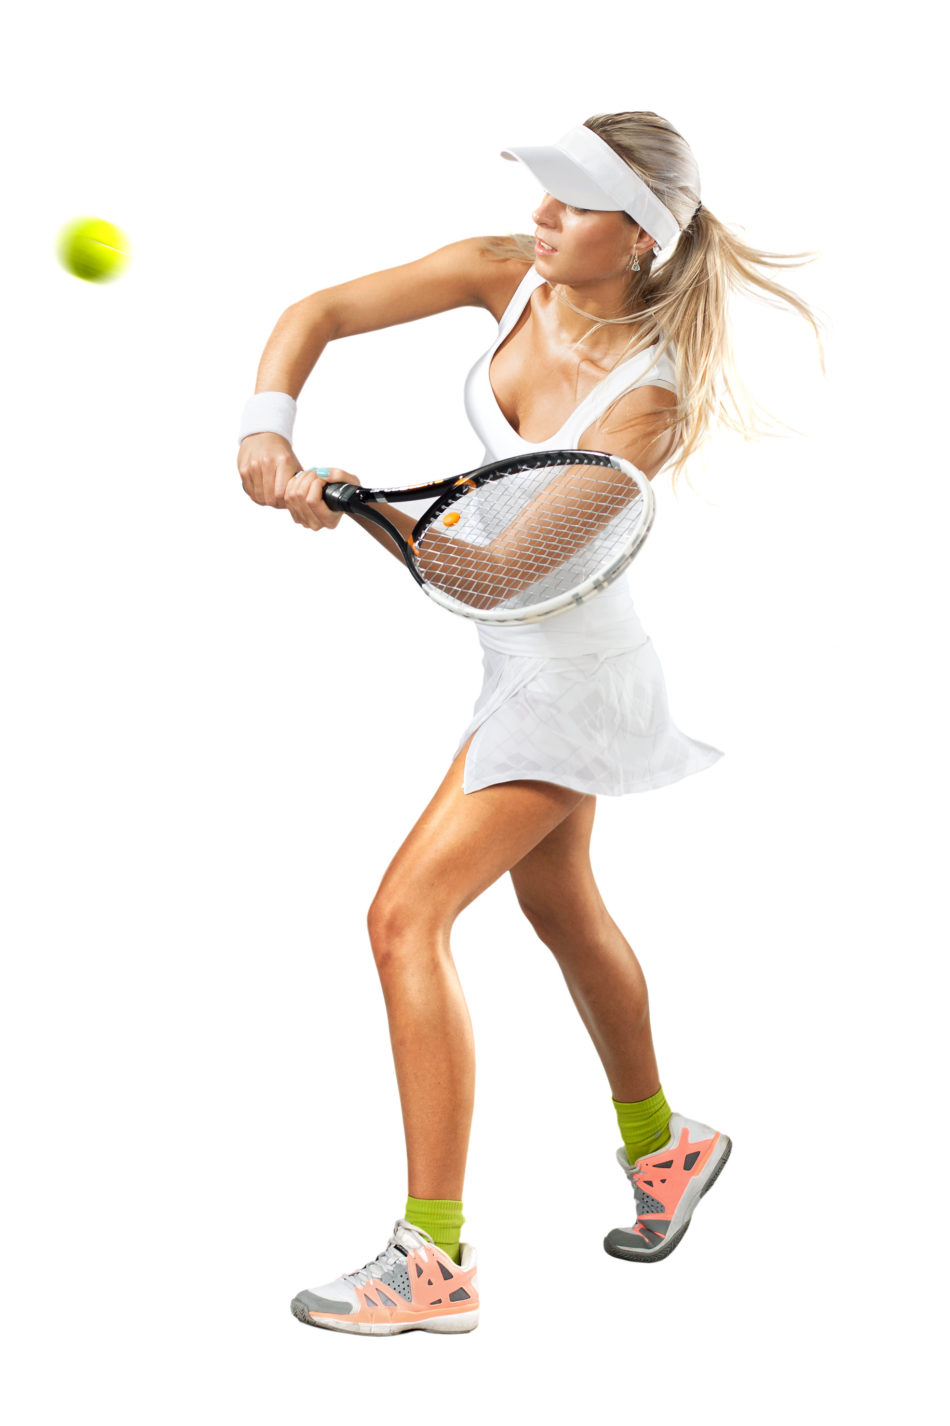 Tennis Lessons at Taconic Sport & Racquet